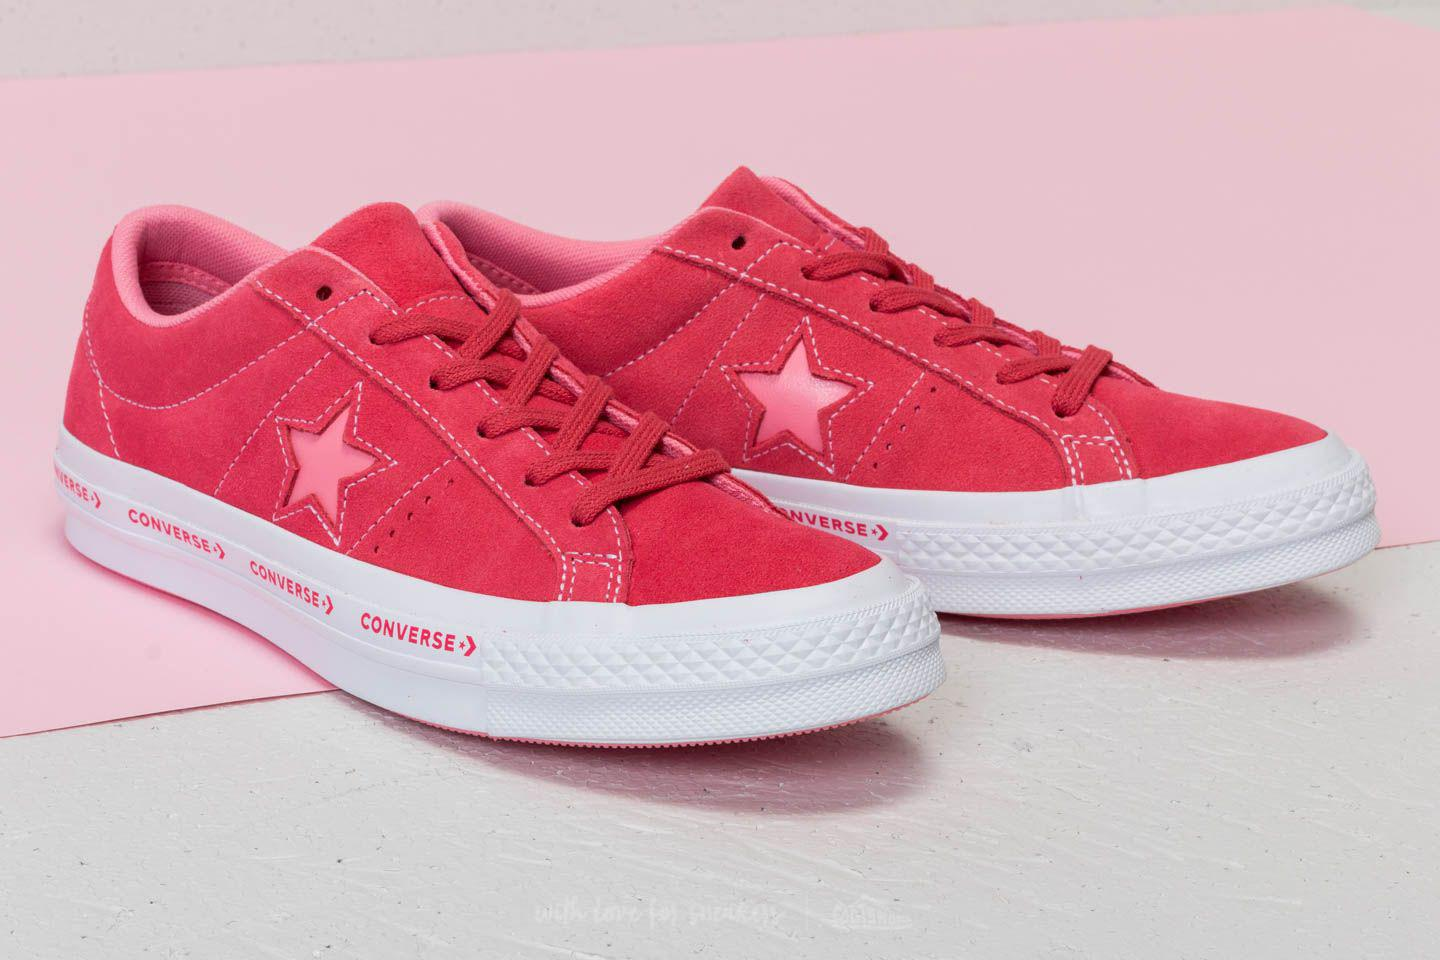 aa3e4d23861d Lyst - Converse One Star Ox Paradise Pink  Geranium Pink in Pink for Men